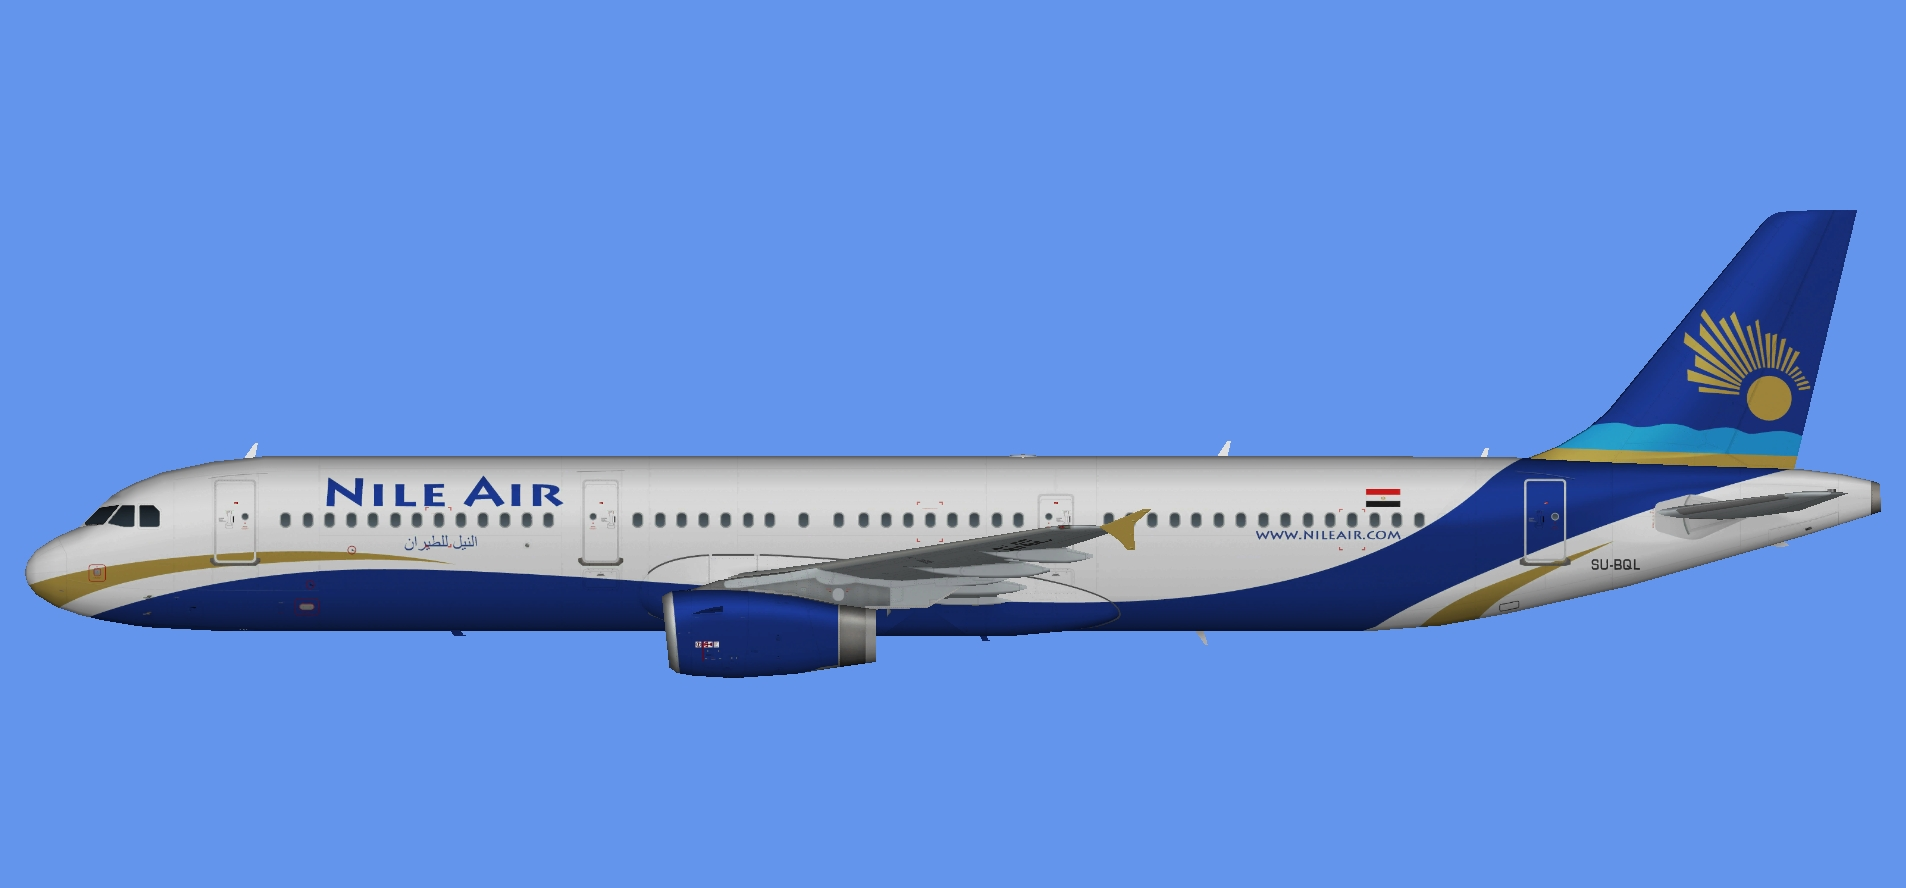 Nile Air Airbus A321